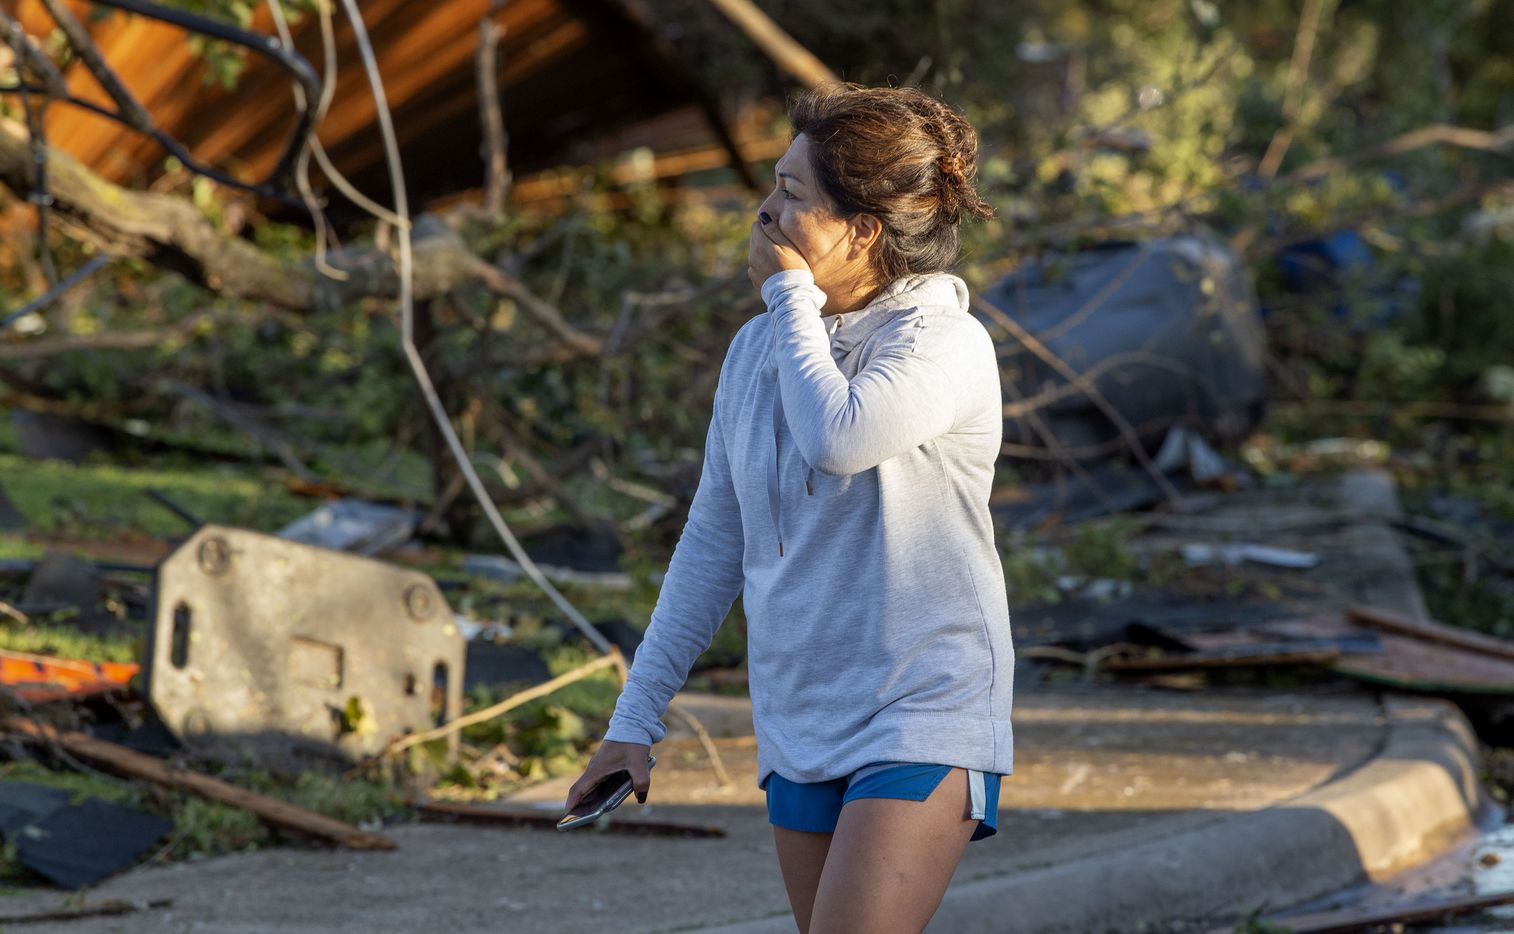 Maricela Chanaa reacts to seeing damage to her neighbors' houses caused by Sunday night's tornado on Monday, Oct. 21, 2019 on Coppedge Lane in Dallas.